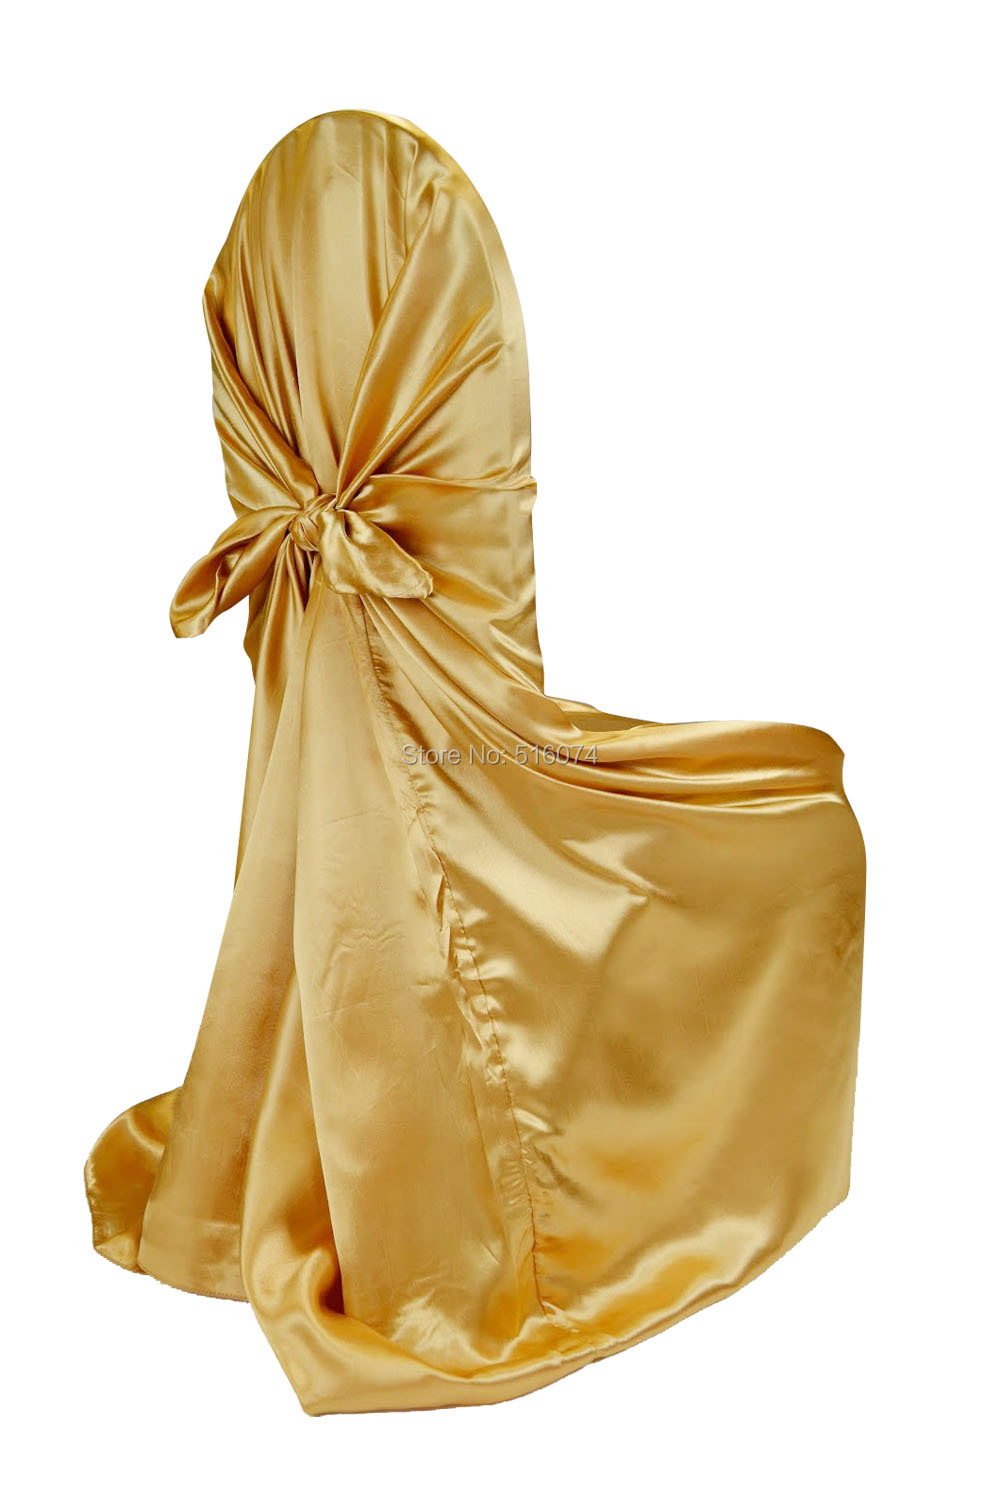 Hot sale 1pcs Gold Self Tie Satin Chair Cover Wedding Banquet party Decoration Product Supplies110cm*140cm, Free shipping(China (Mainland))